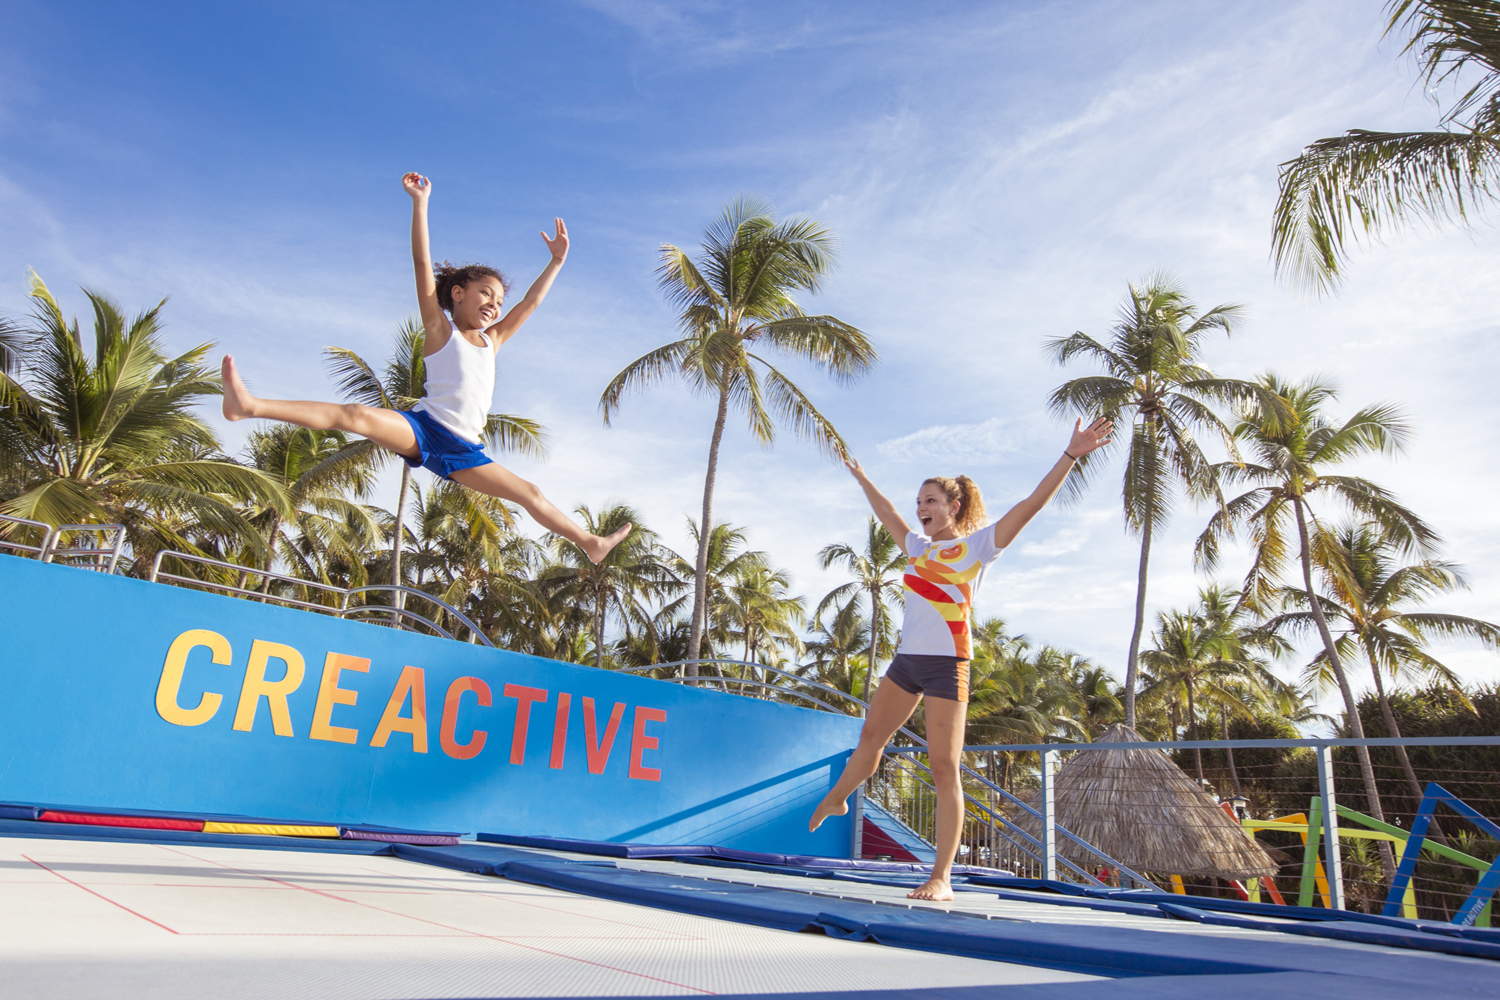 Club Med offers Creactive facilities where kids can use a trampoline, juggle or do a trapeze act.